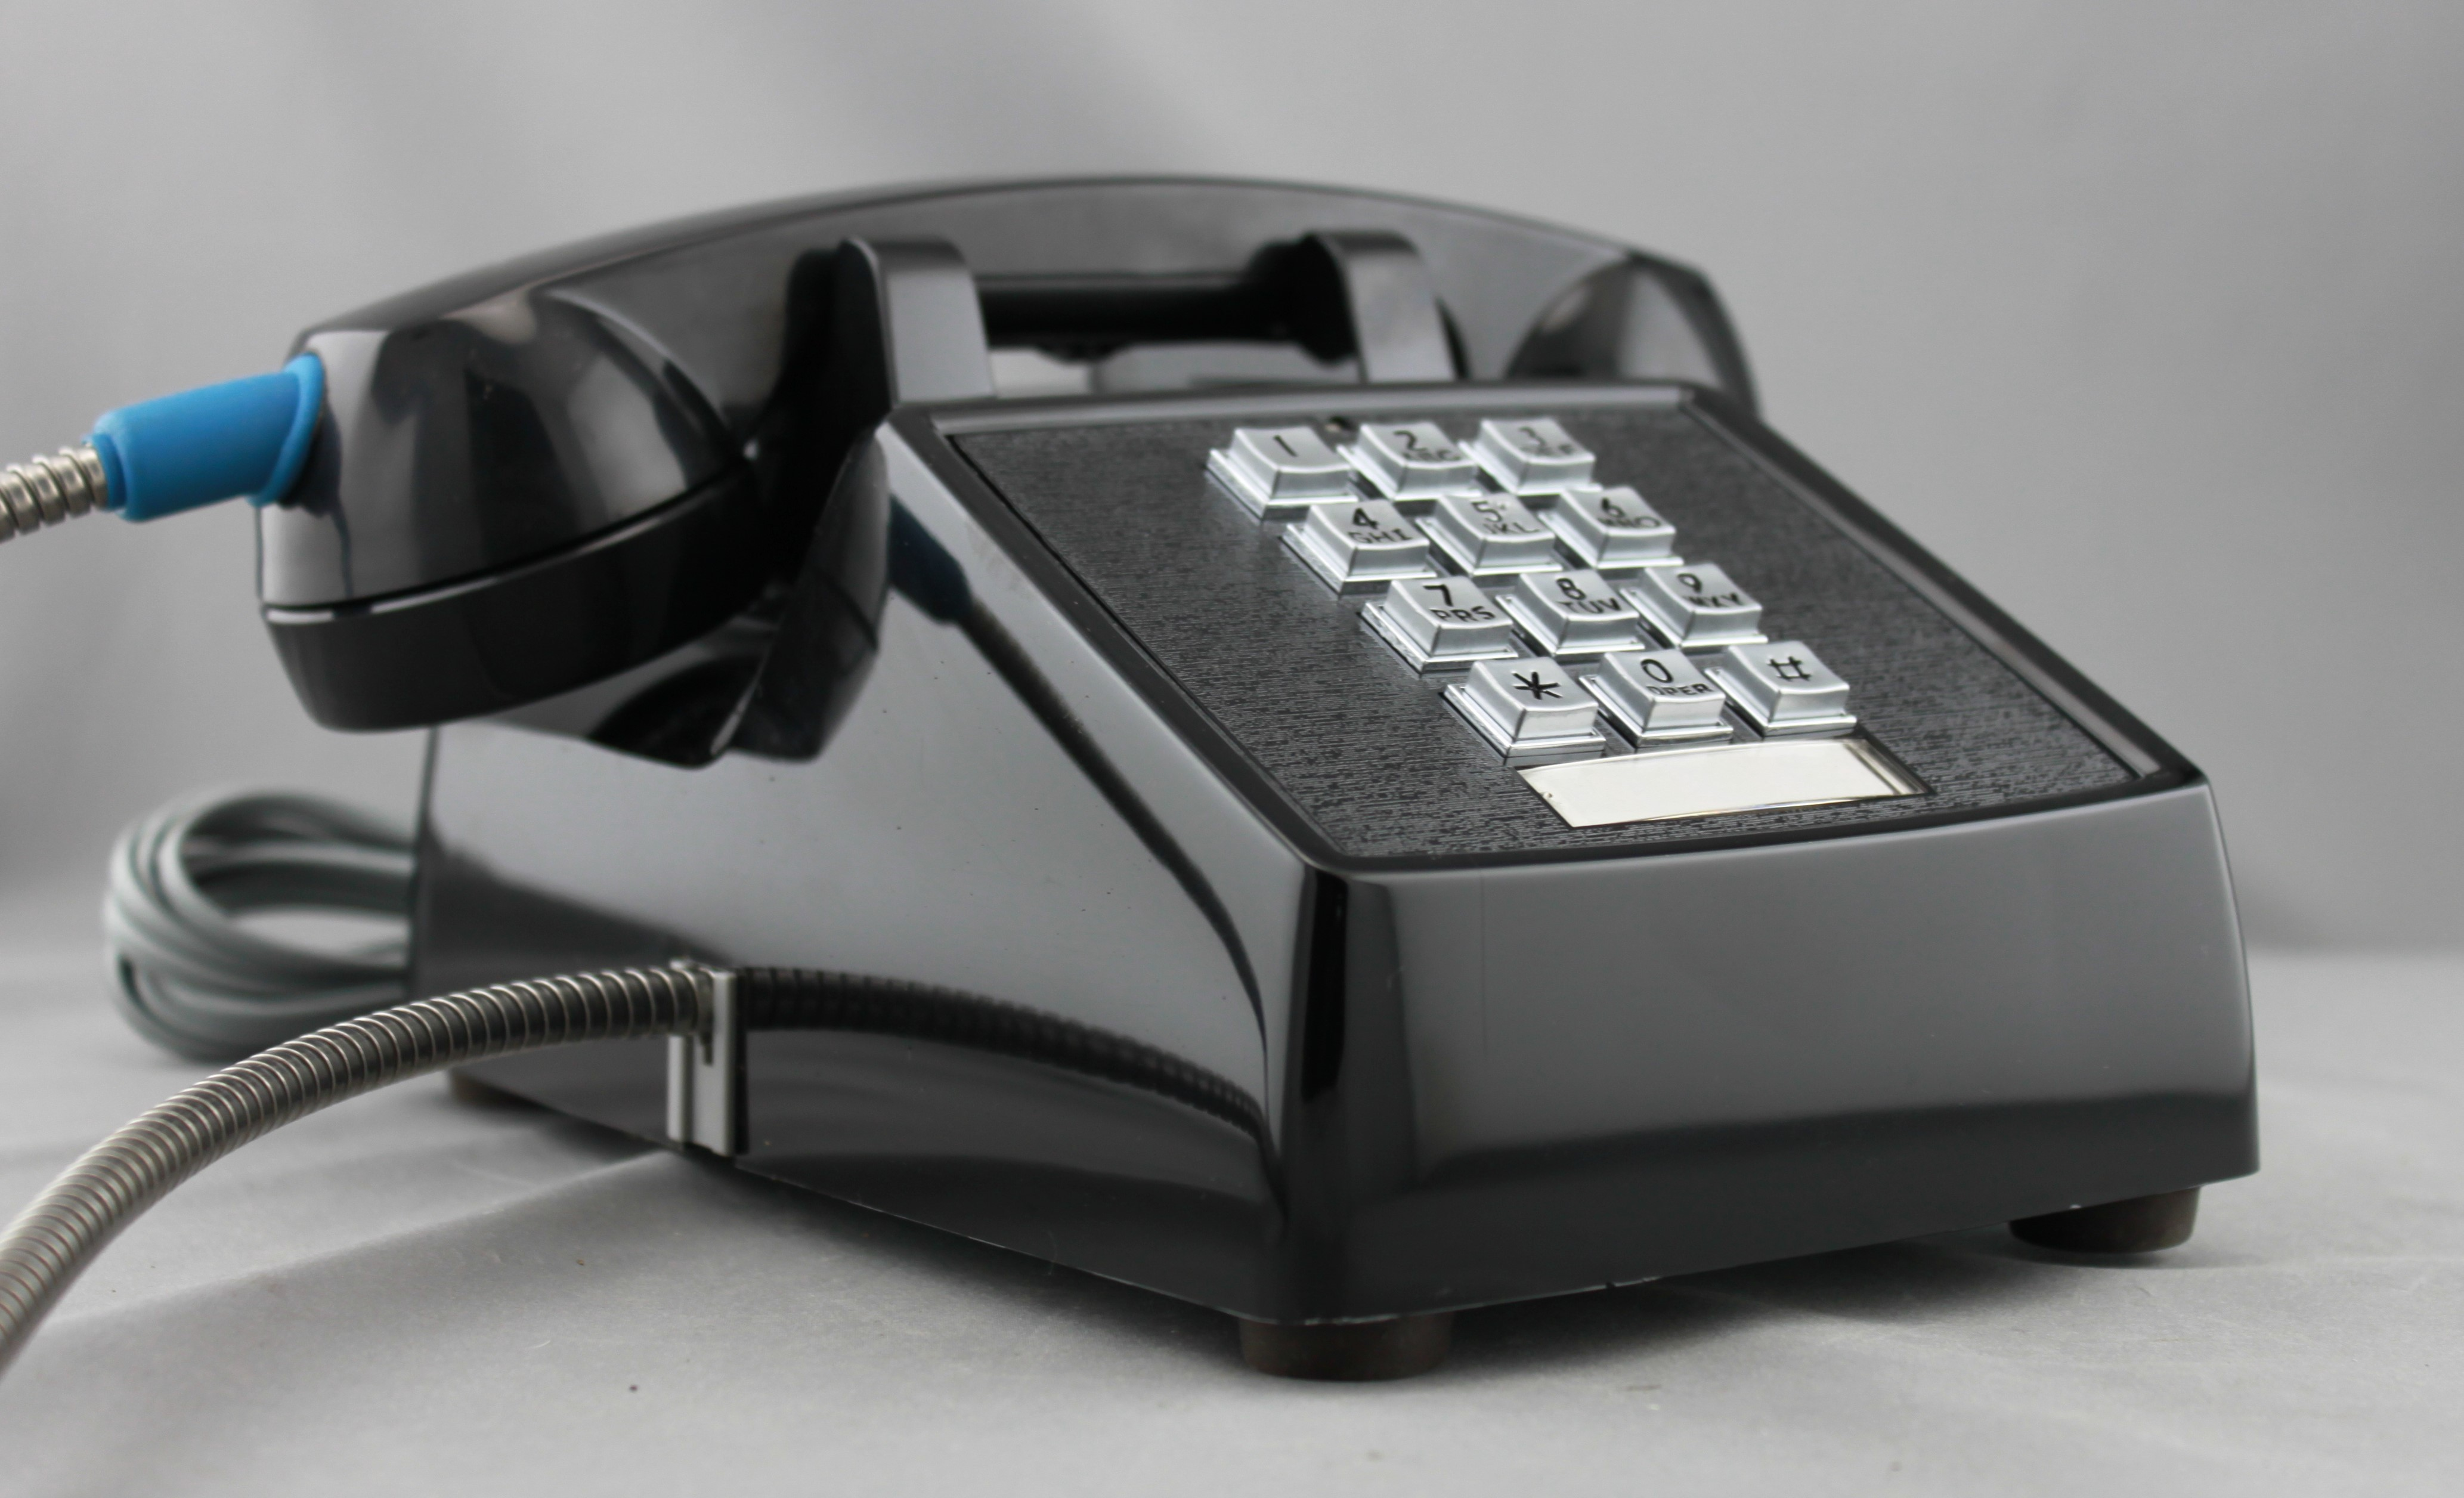 2500 Armored Desk Phone